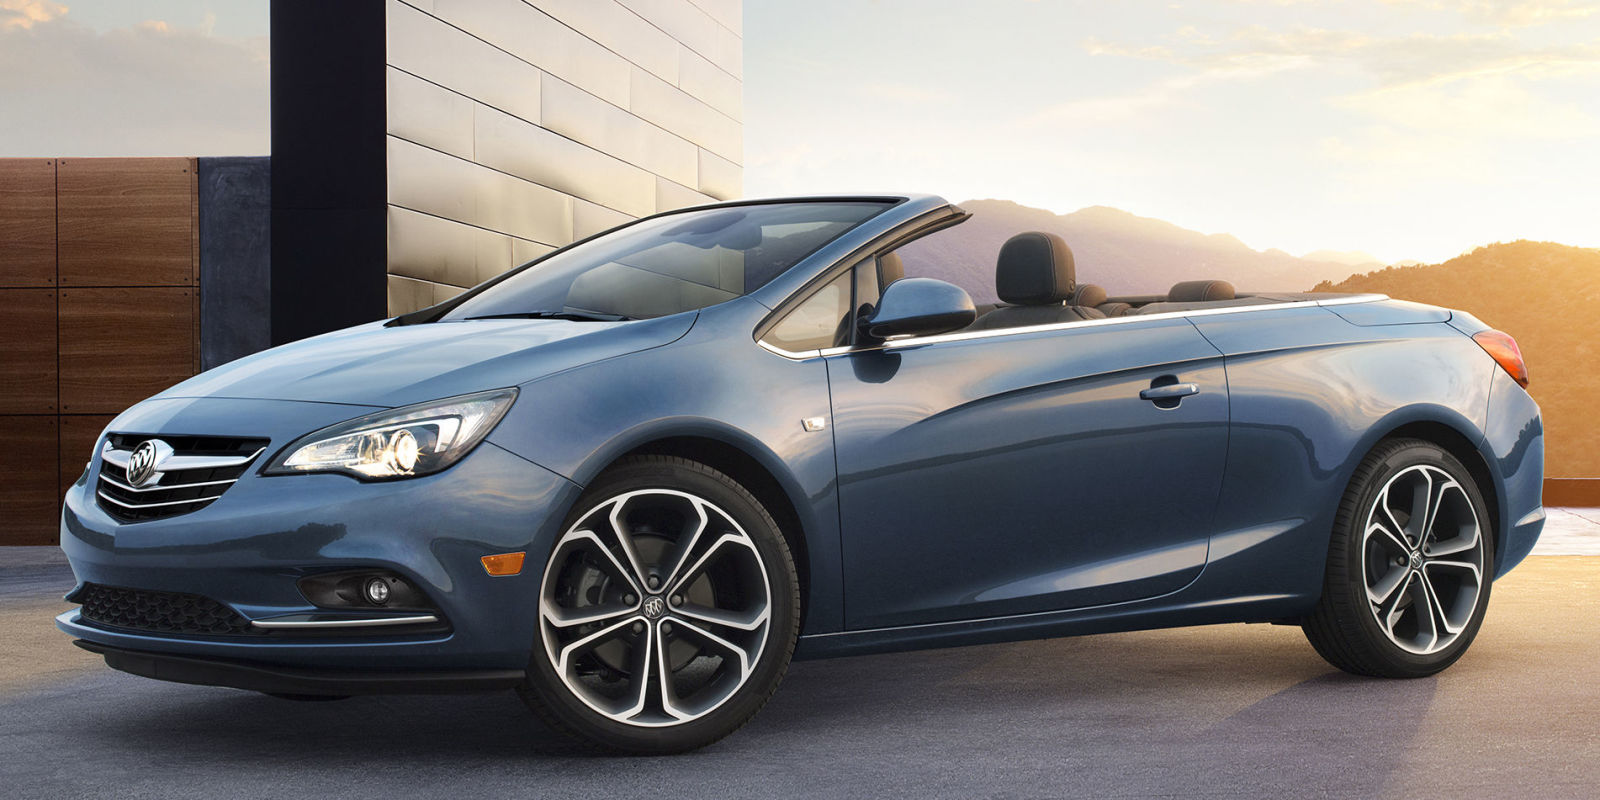 2016 buick cascada photo gallery. Black Bedroom Furniture Sets. Home Design Ideas